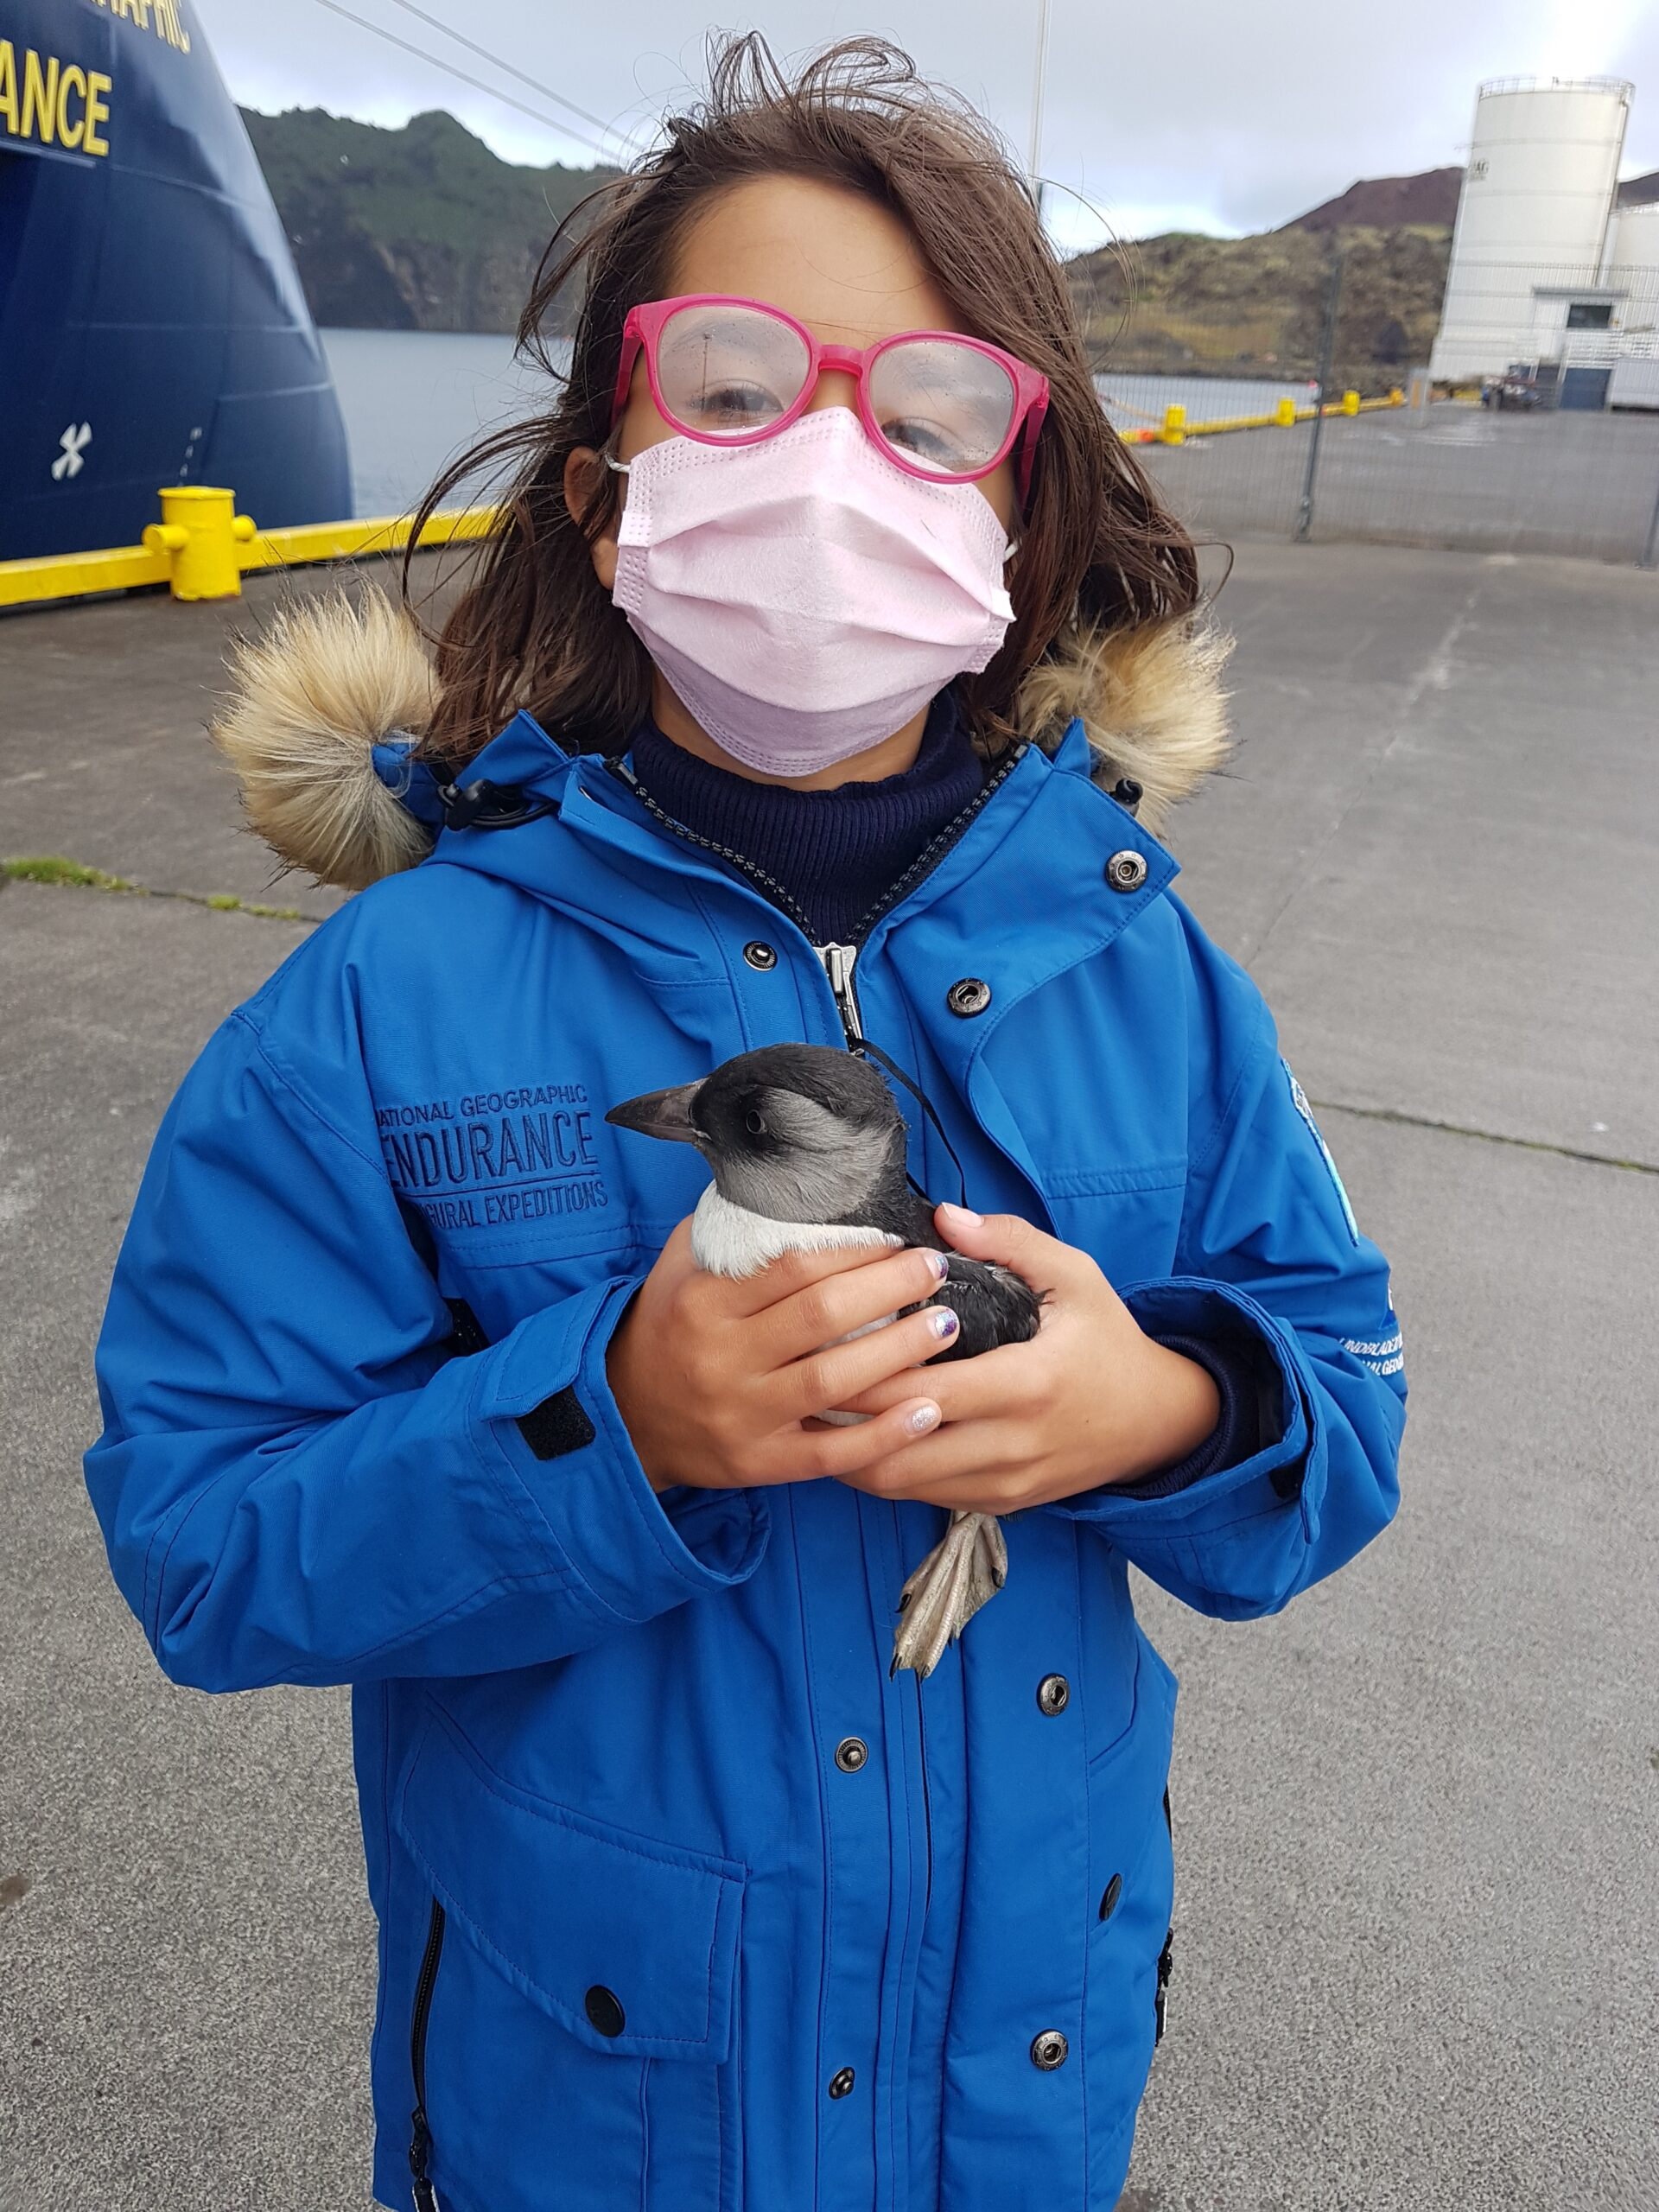 Lindblad cruise: holding a puffling